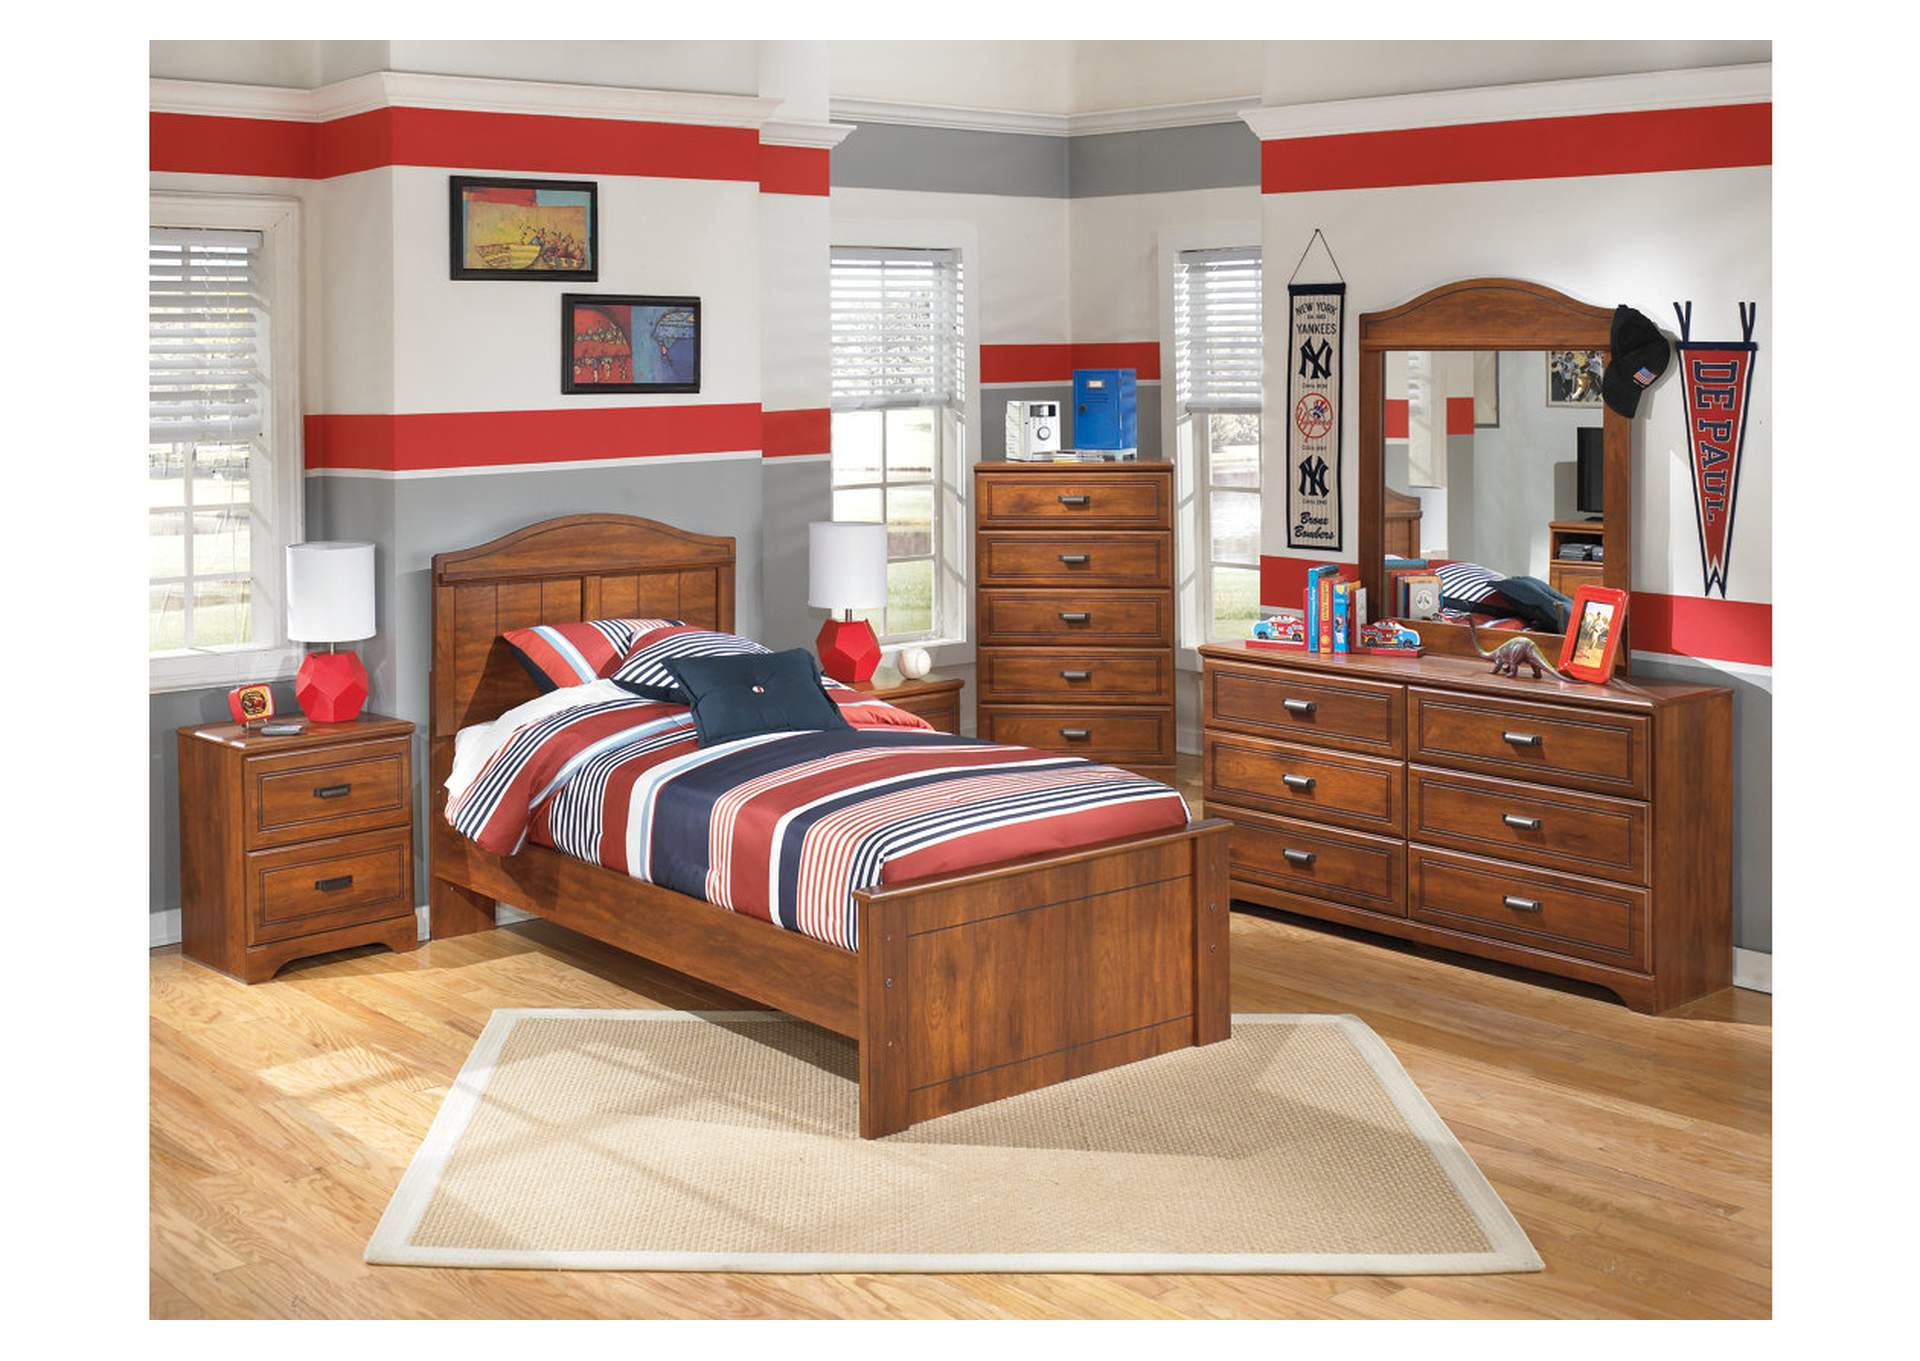 Barchan Twin Panel Bed w/Dresser, Mirror & Drawer Chest,Signature Design by Ashley